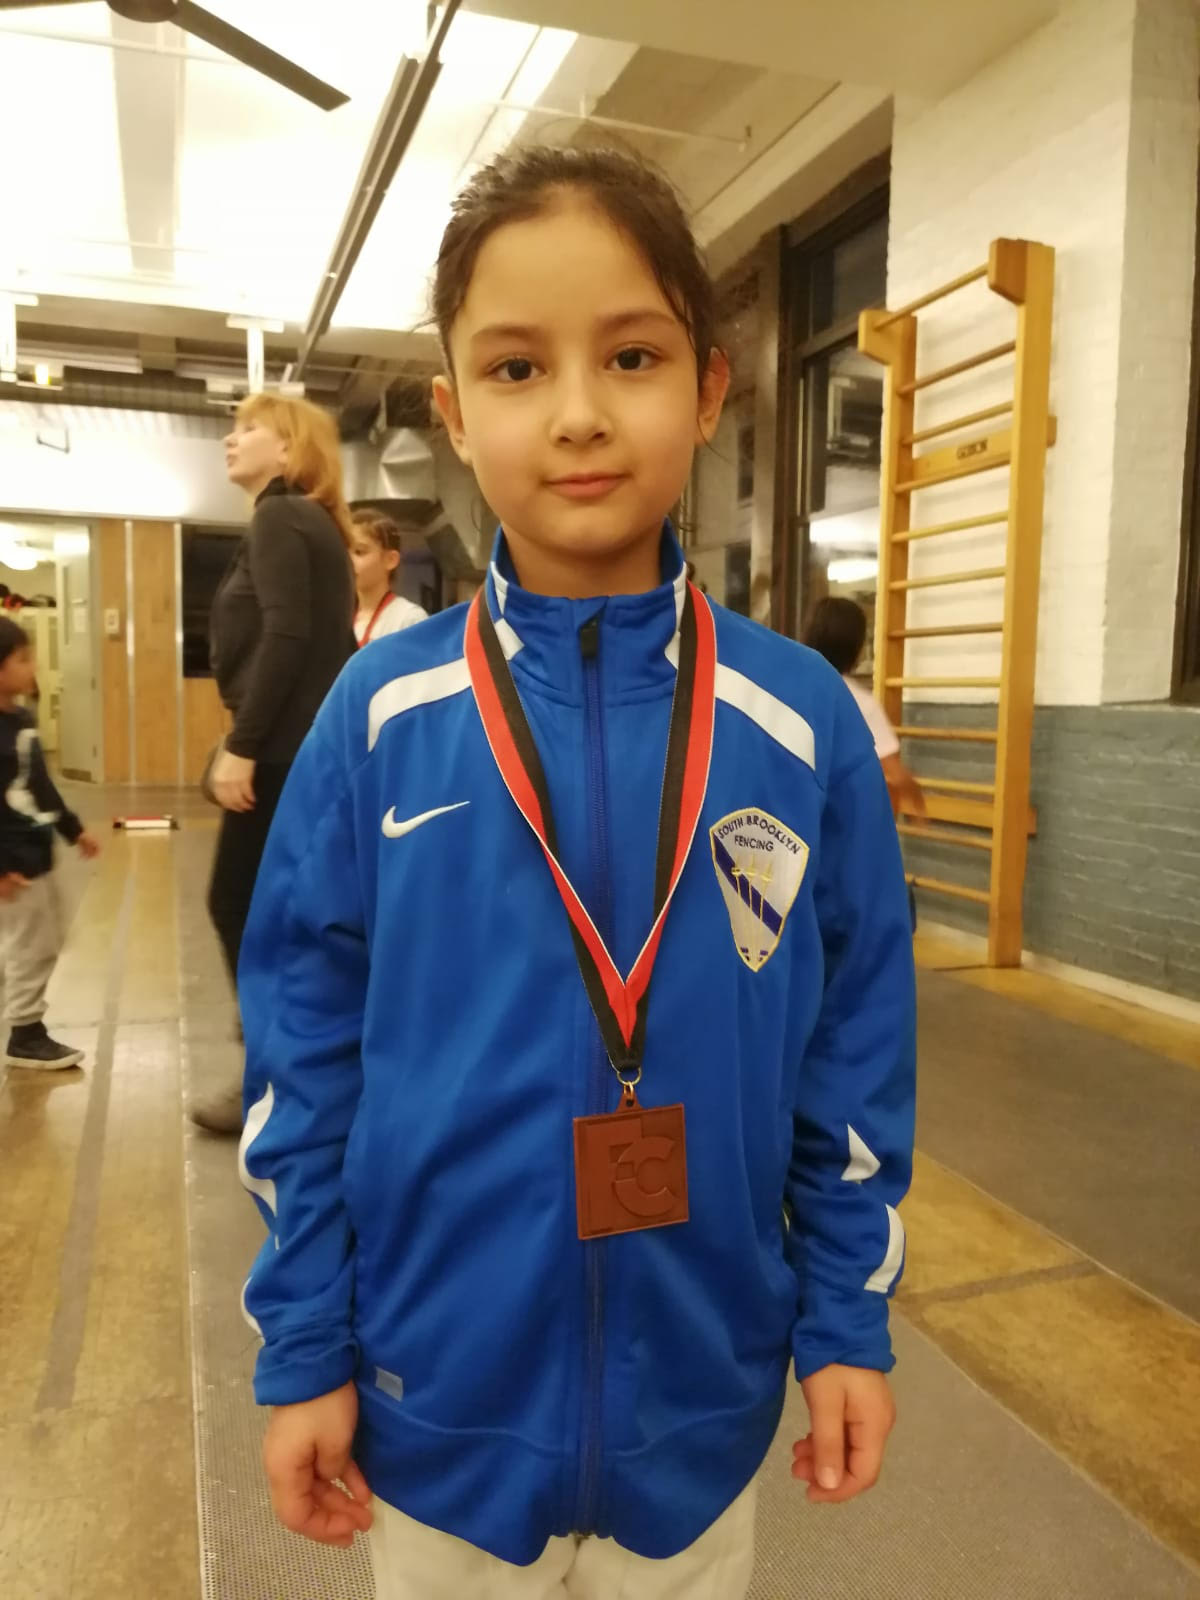 Fencers Club YOUTH Y10 Emily Cascone 3rd  February 24th 2019